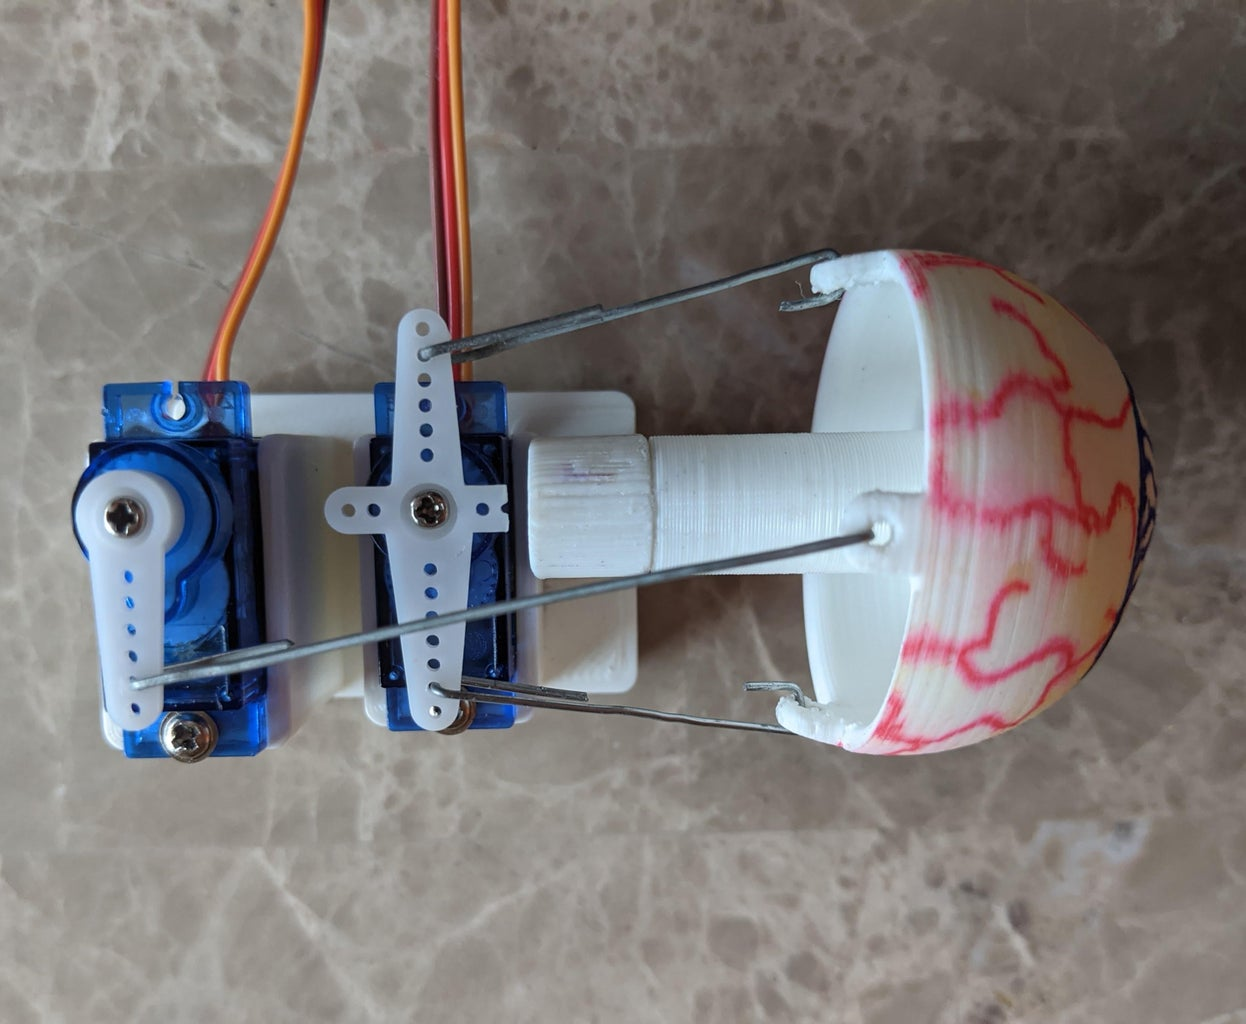 Home Your Servos and Finish the Eye Mechanism